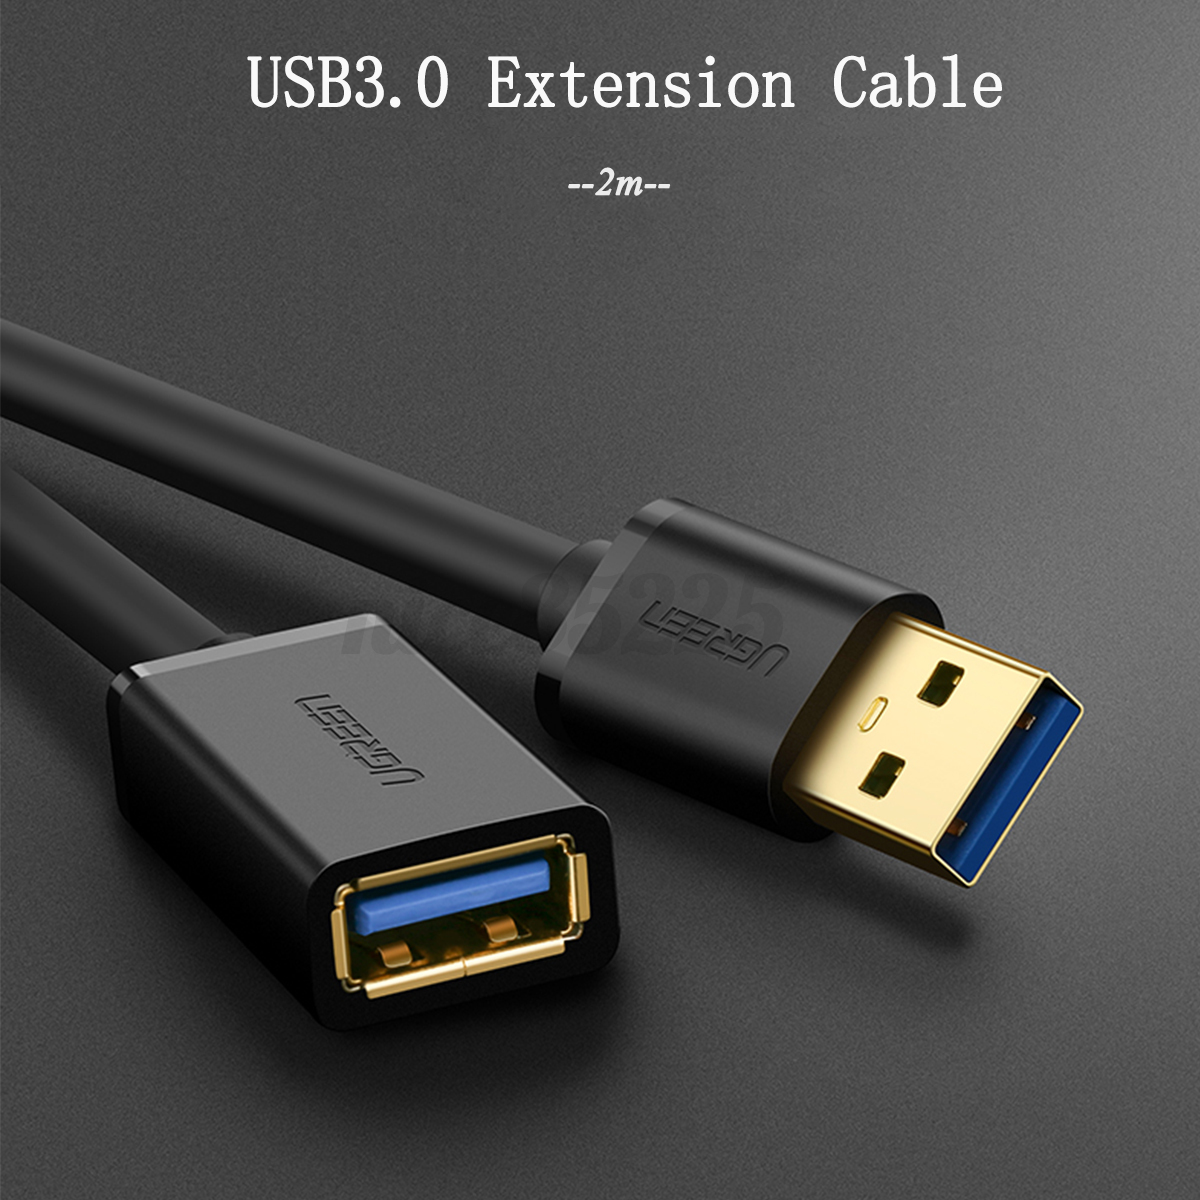 6ft USB 3.0 Extension Cable Extender Cord Type A Male To Female Playstation New